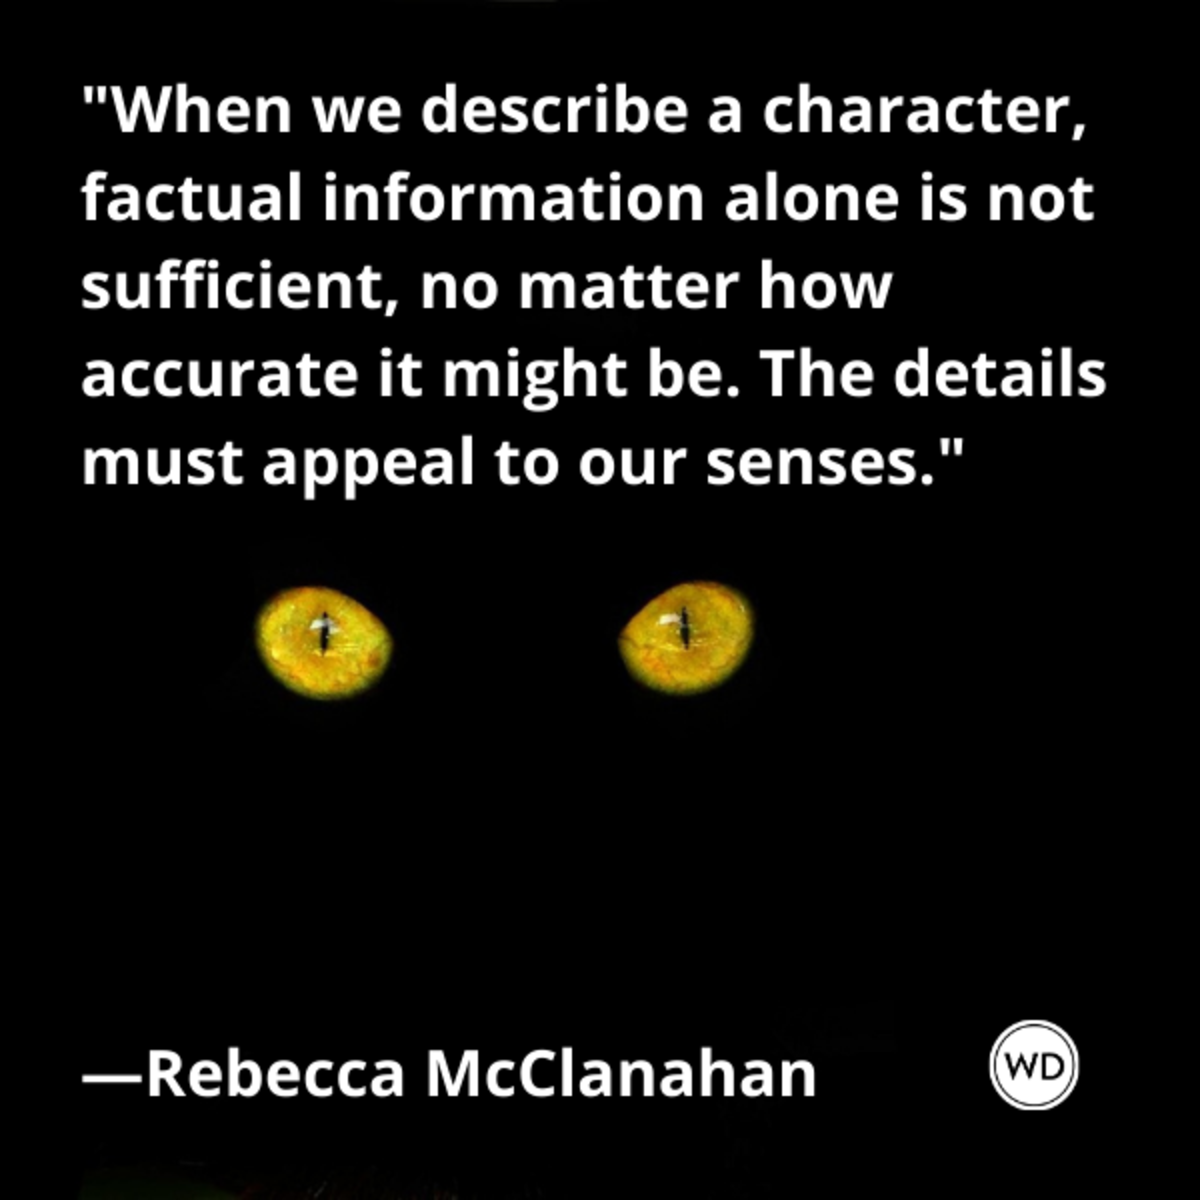 rebecca_mcclanahan_quotes_when_we_describe_a_character_factual_information_alone_is_not_sufficient